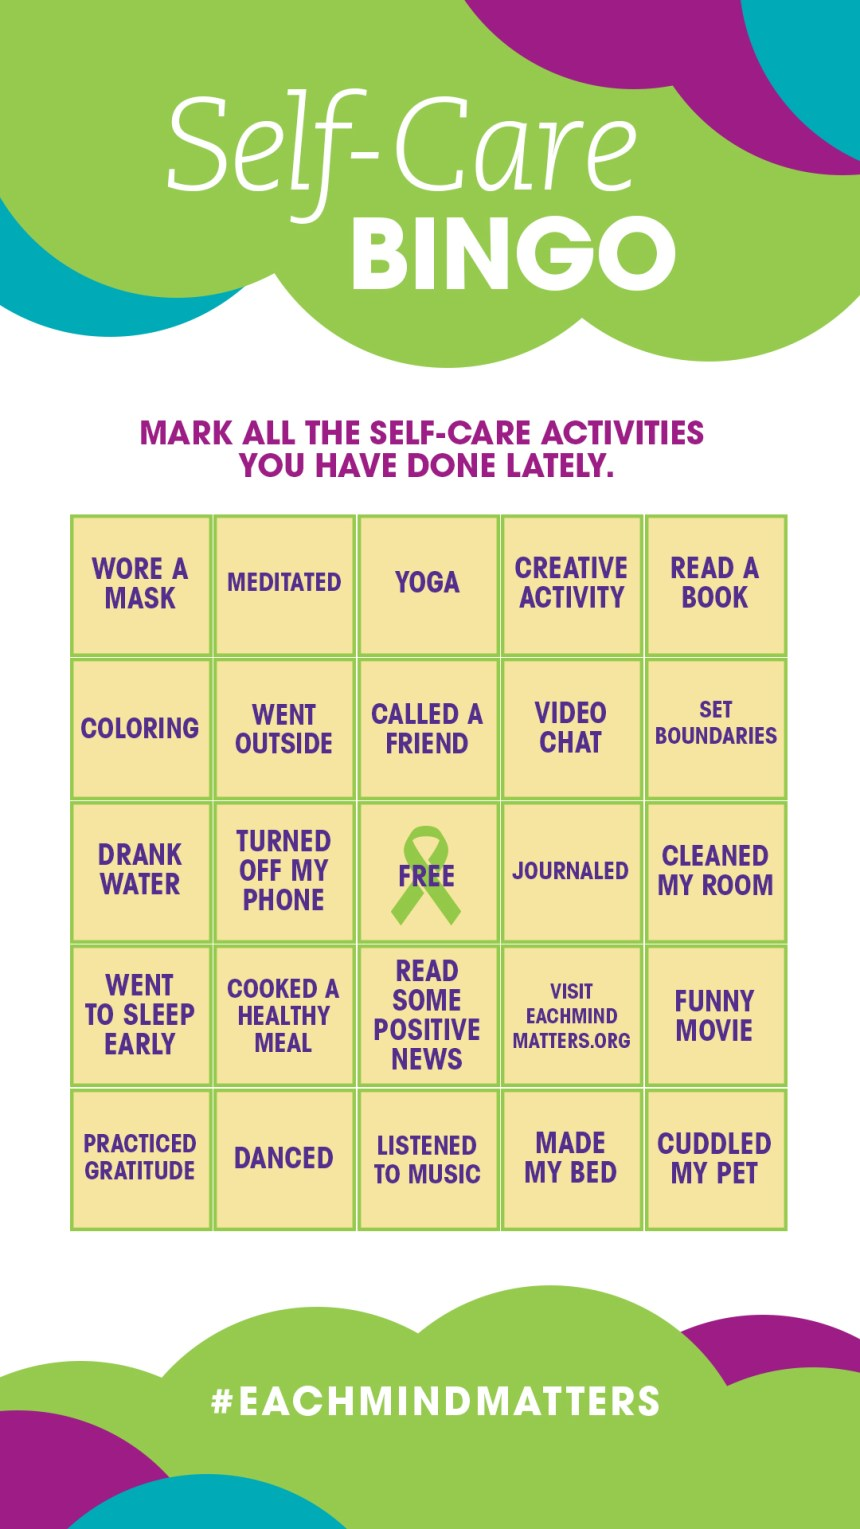 Self-Care Bingo Insta Story Template FINAL